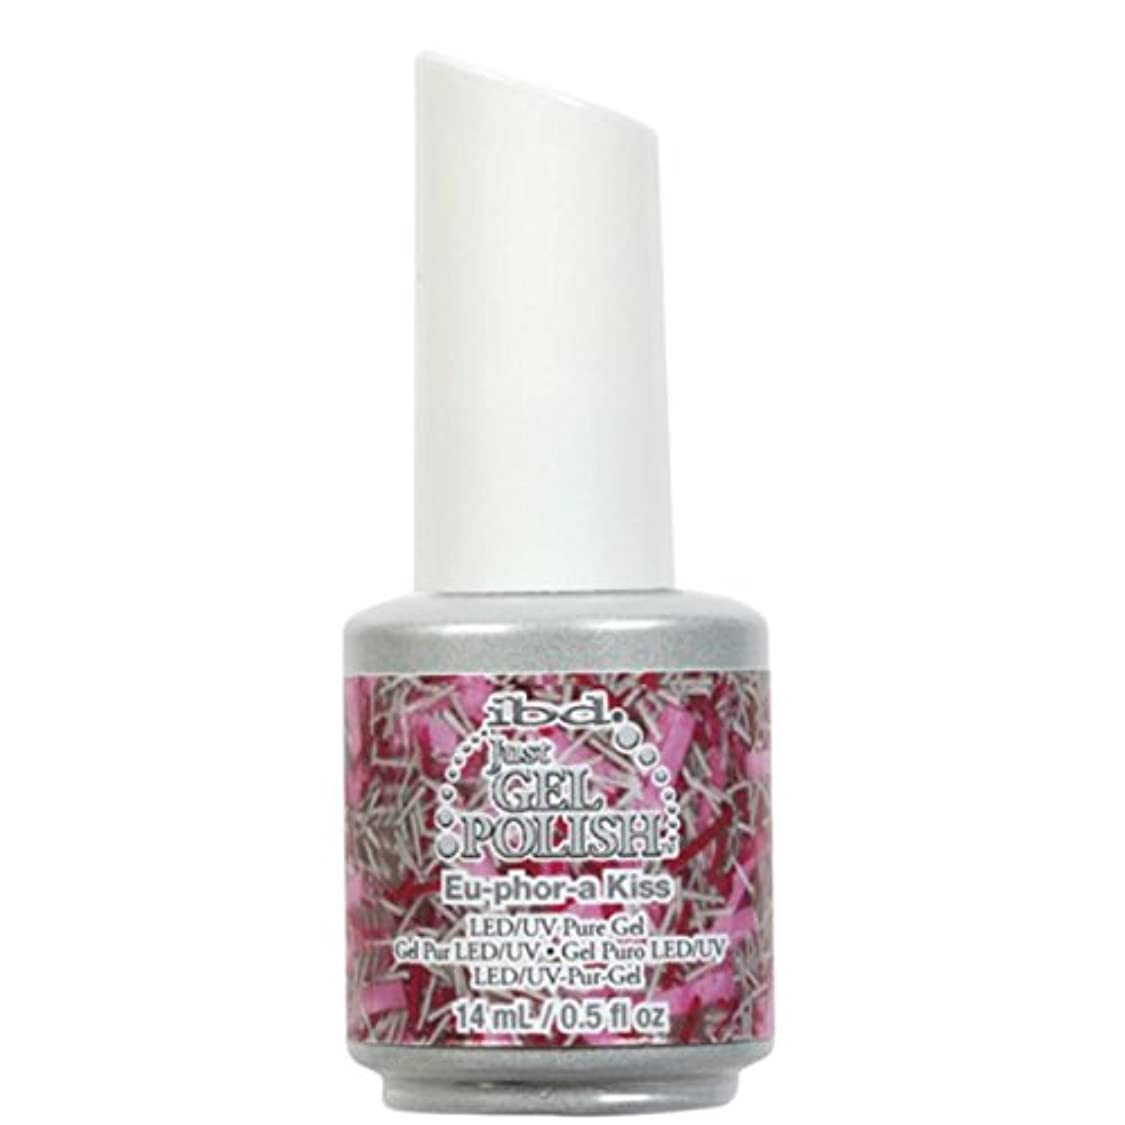 直径スクラップブックしないibd Just Gel Nail Polish - Eu-Phor-A Kiss - 14ml / 0.5oz